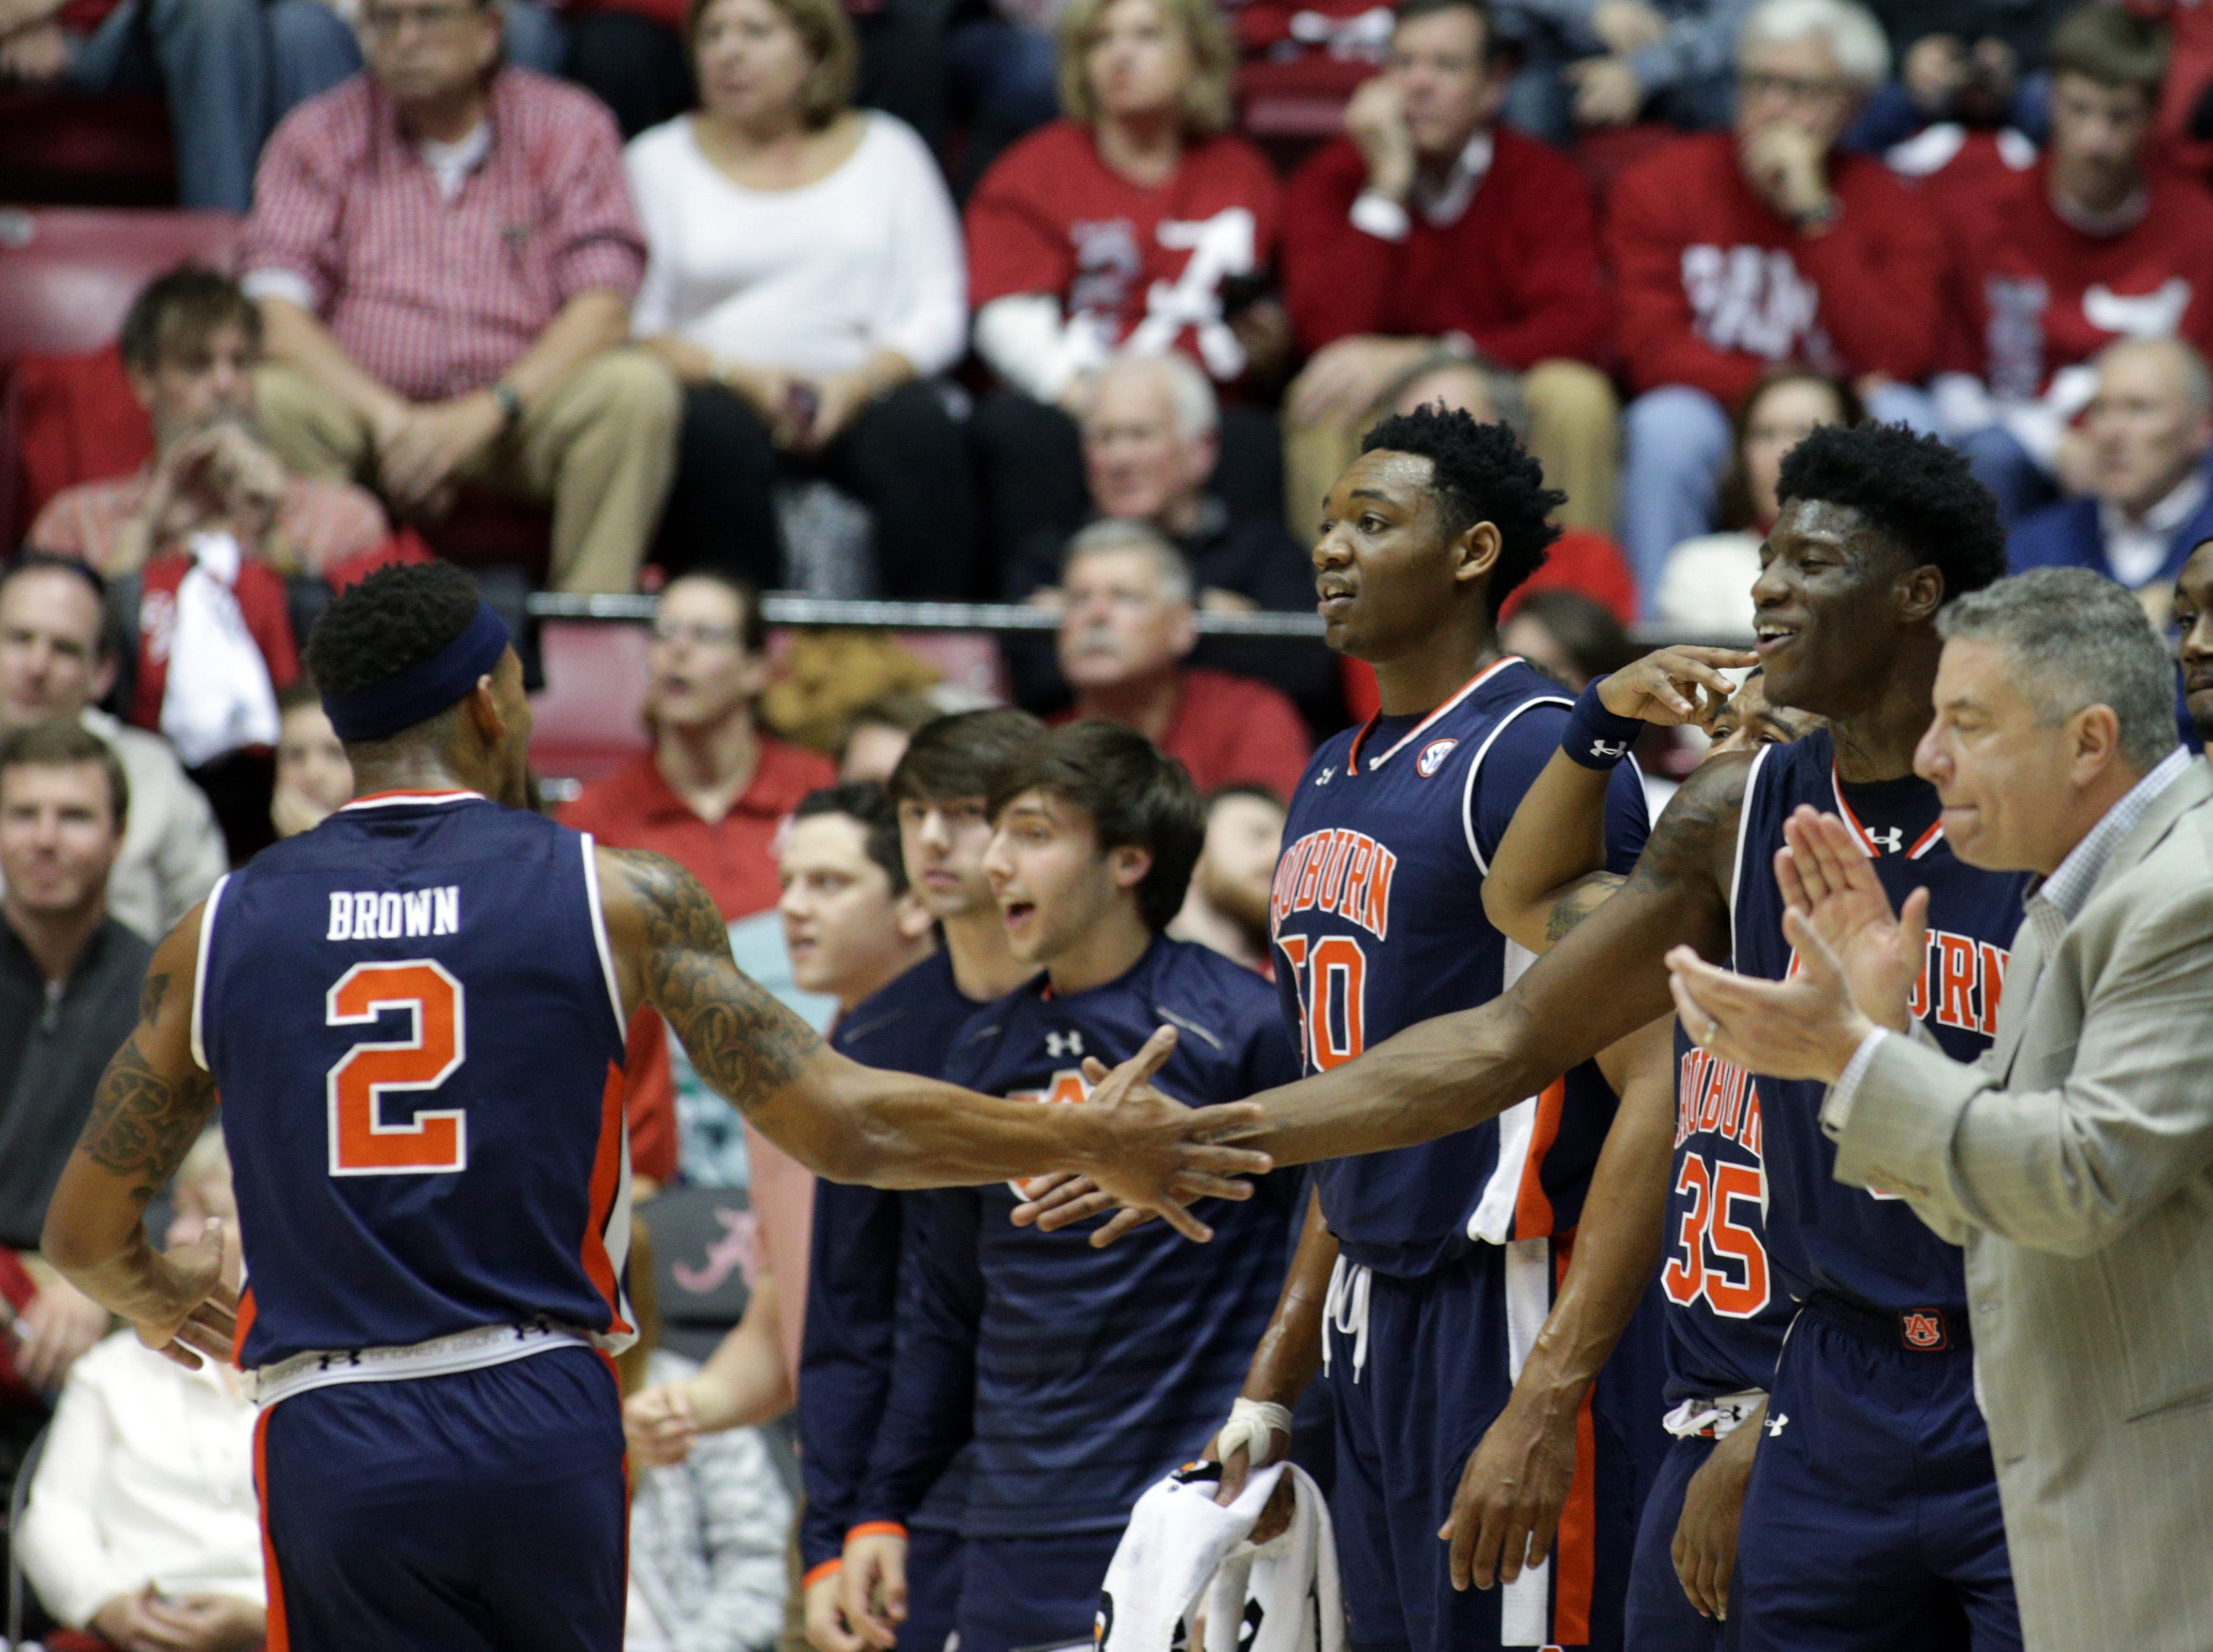 Feb 4, 2017; Tuscaloosa, AL, USA; Auburn Tigers guard Bryce Brown (2) celebrates with Auburn Tigers forward Danjel Purifoy (3) during the second half against the Alabama Crimson Tide at Coleman Coliseum. The Tigers defeated the Tide 82-77.  Mandatory Credit: Marvin Gentry-USA TODAY Sports